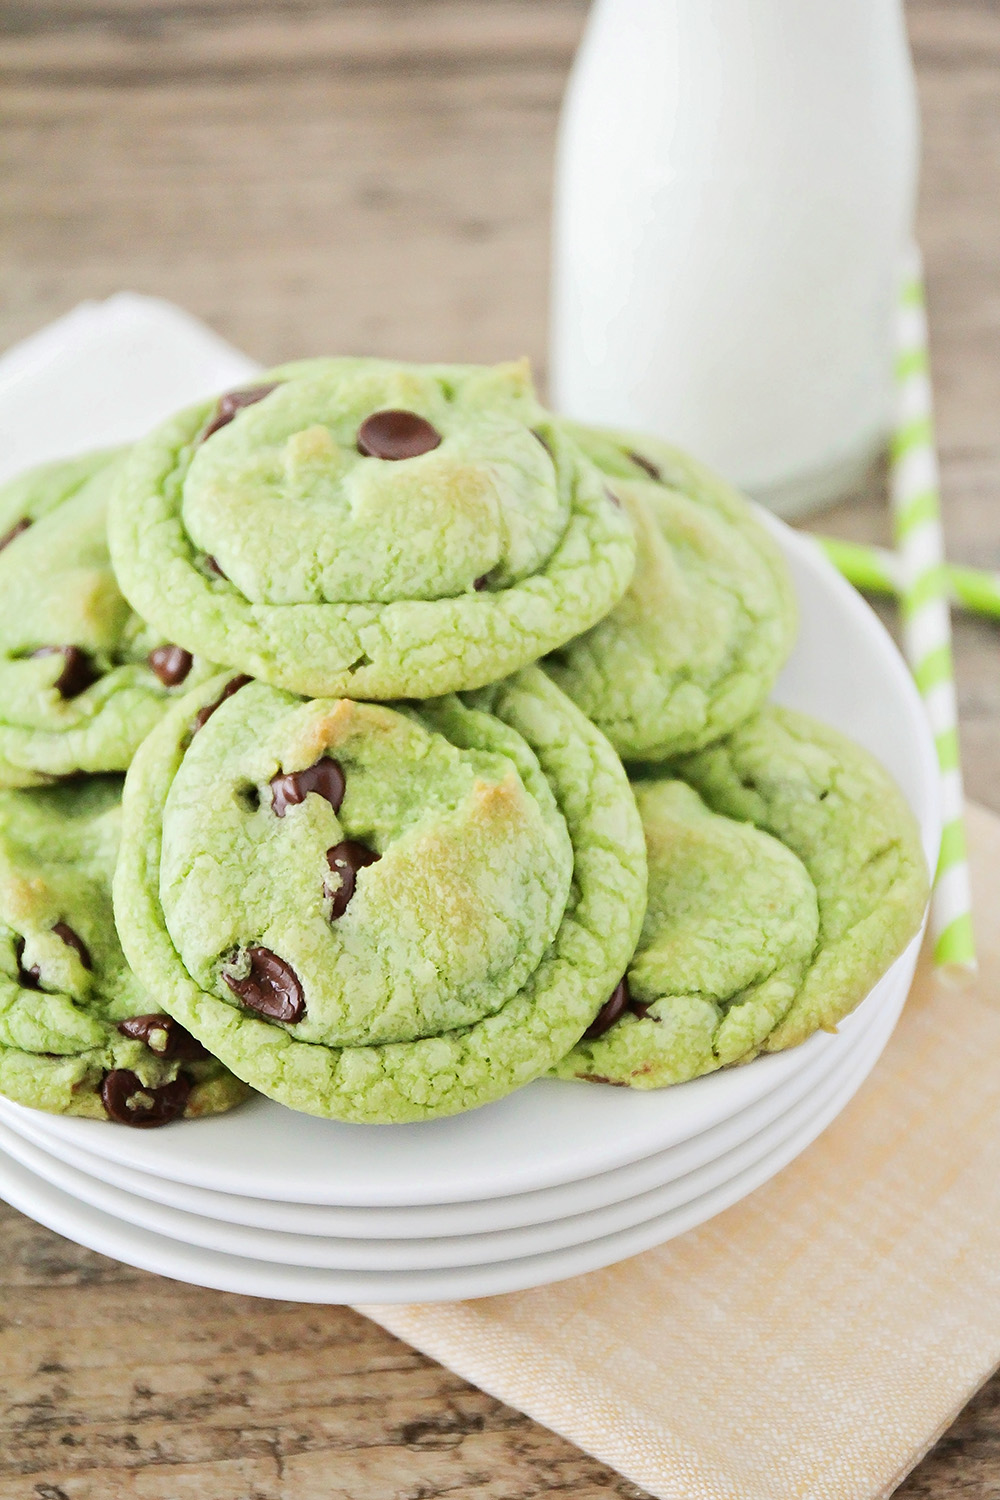 These mint chocolate chip cookies have the perfect touch of mint flavor and are loaded with melty chocolate chips. Perfect for St. Patrick's Day or any time!